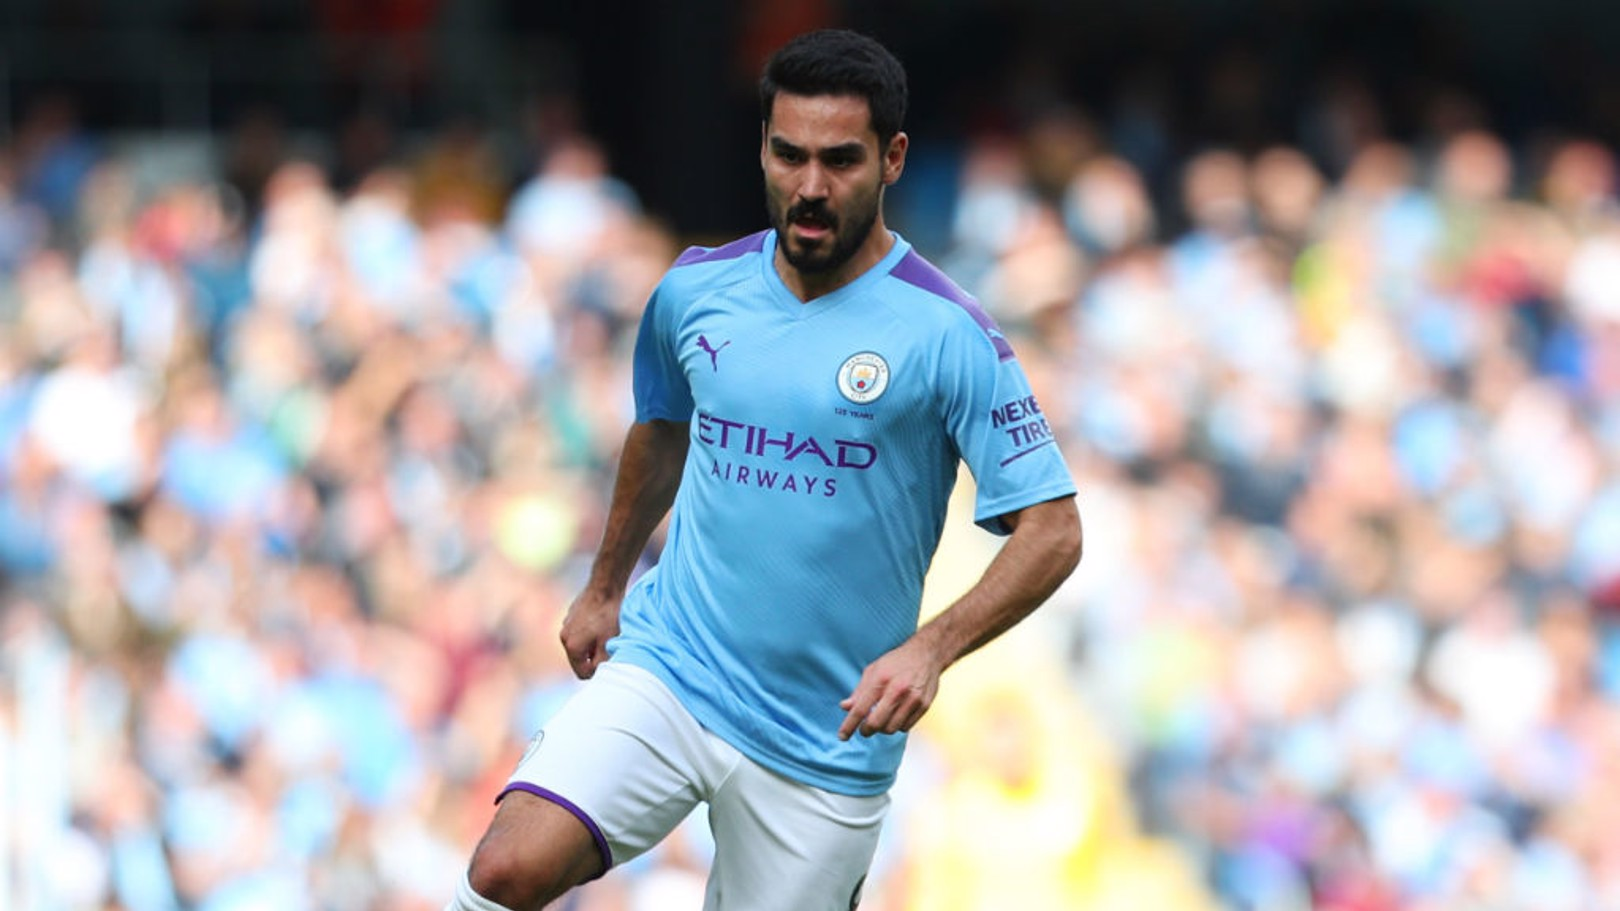 'Frustrated' City will respond, pledges Gundogan